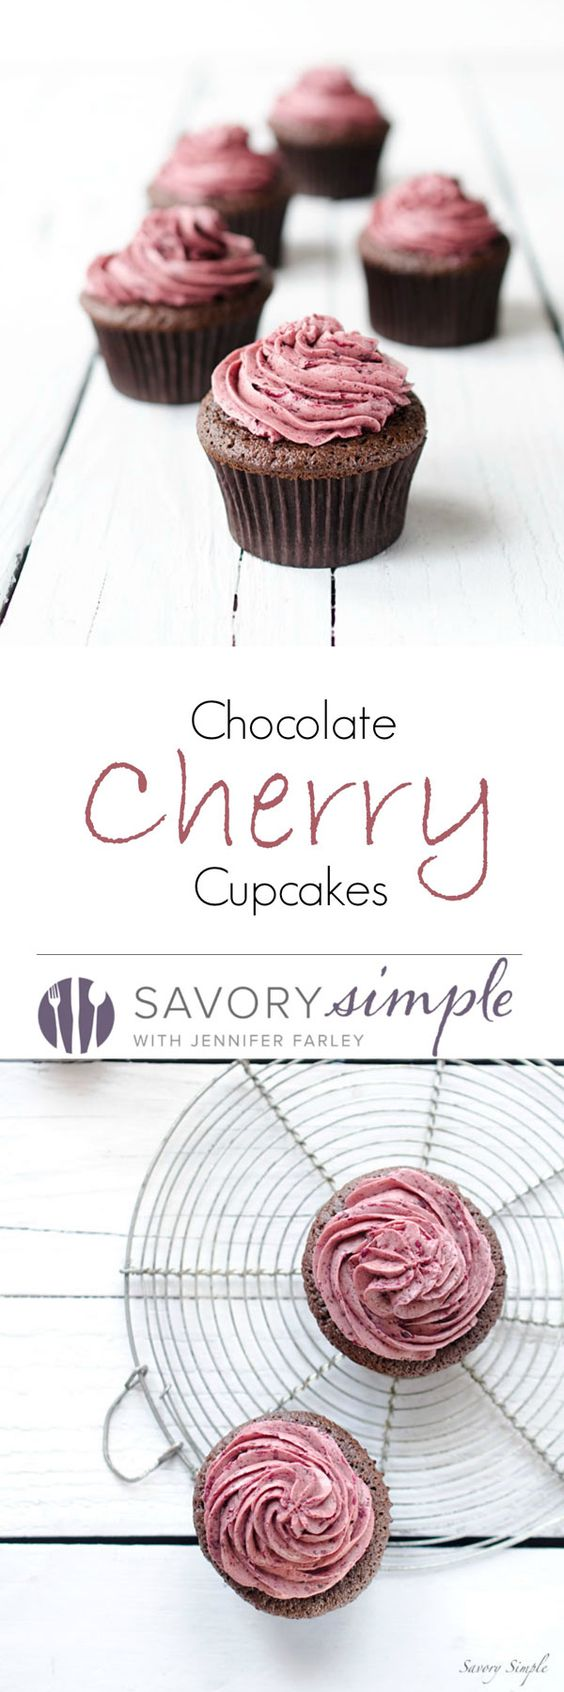 Chocolate Cherry Cupcakes - These rich chocolate cupcakes are topped with a light meringue-based cherry buttercream. Get the recipe from SavorySimple.net.